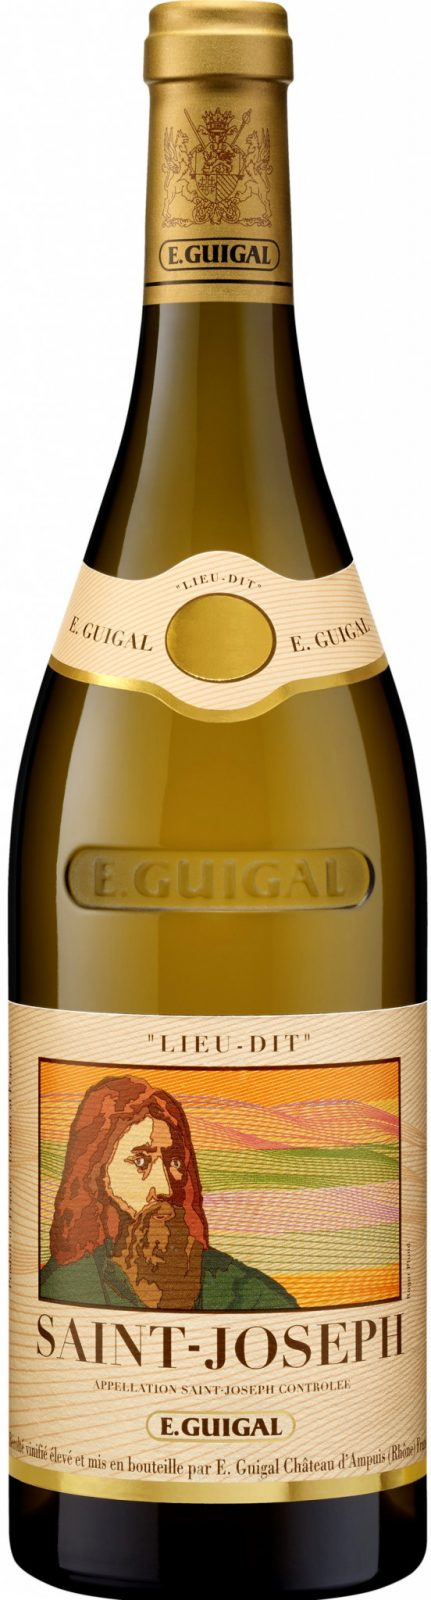 Guigal Saint-Joseph-Lieu-Dit-Blanc Wineaffair